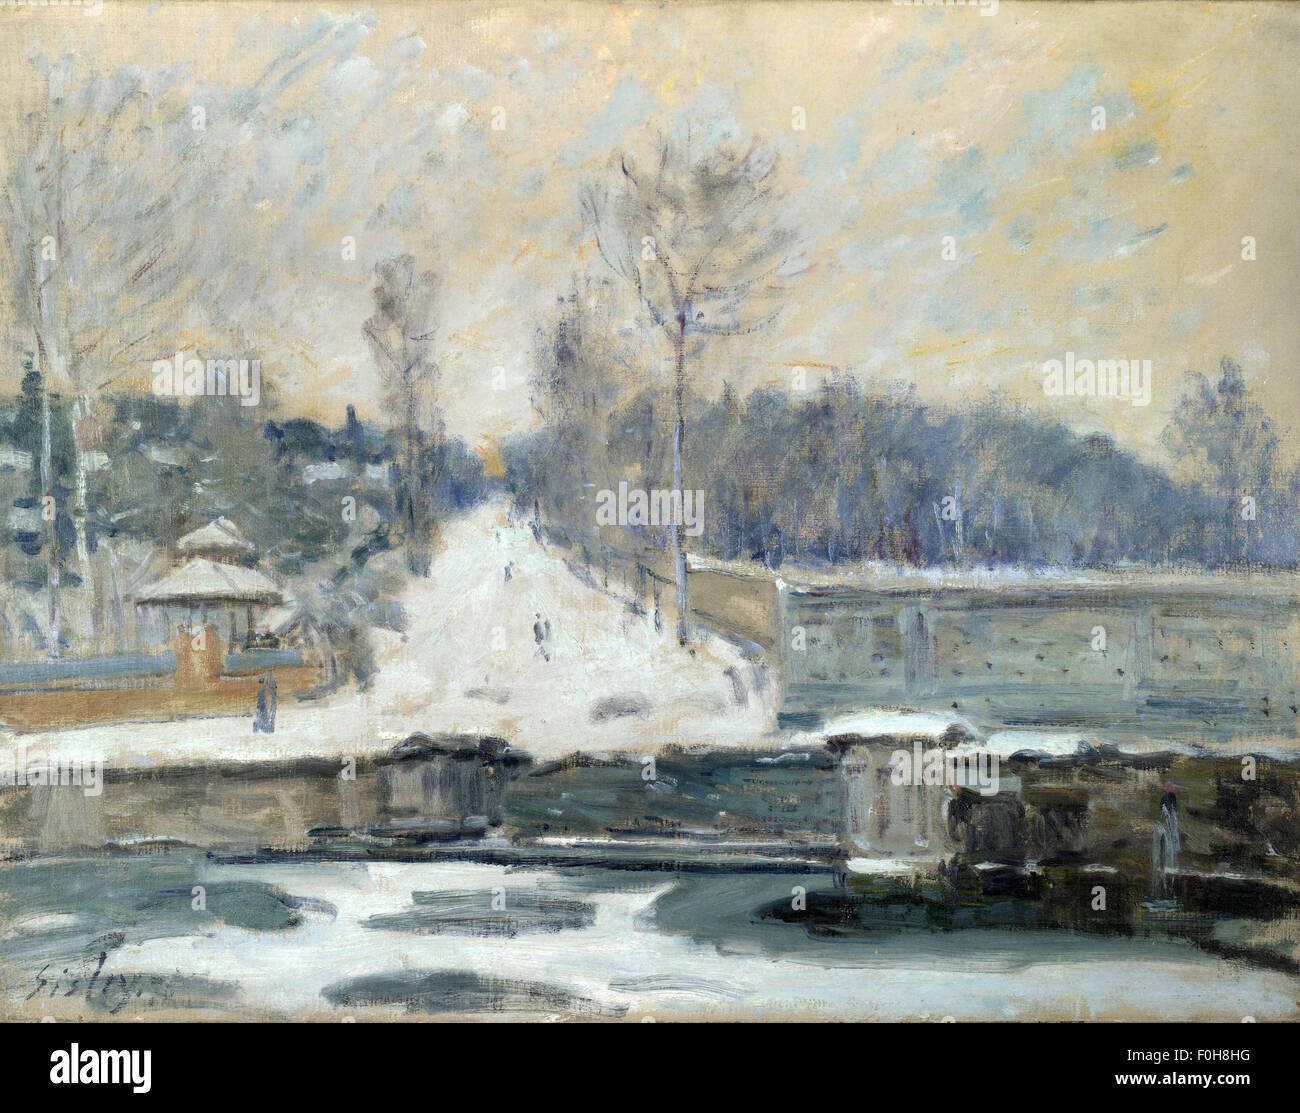 Alfred Sisley - The Watering Place at Marly le Roi - Stock Image